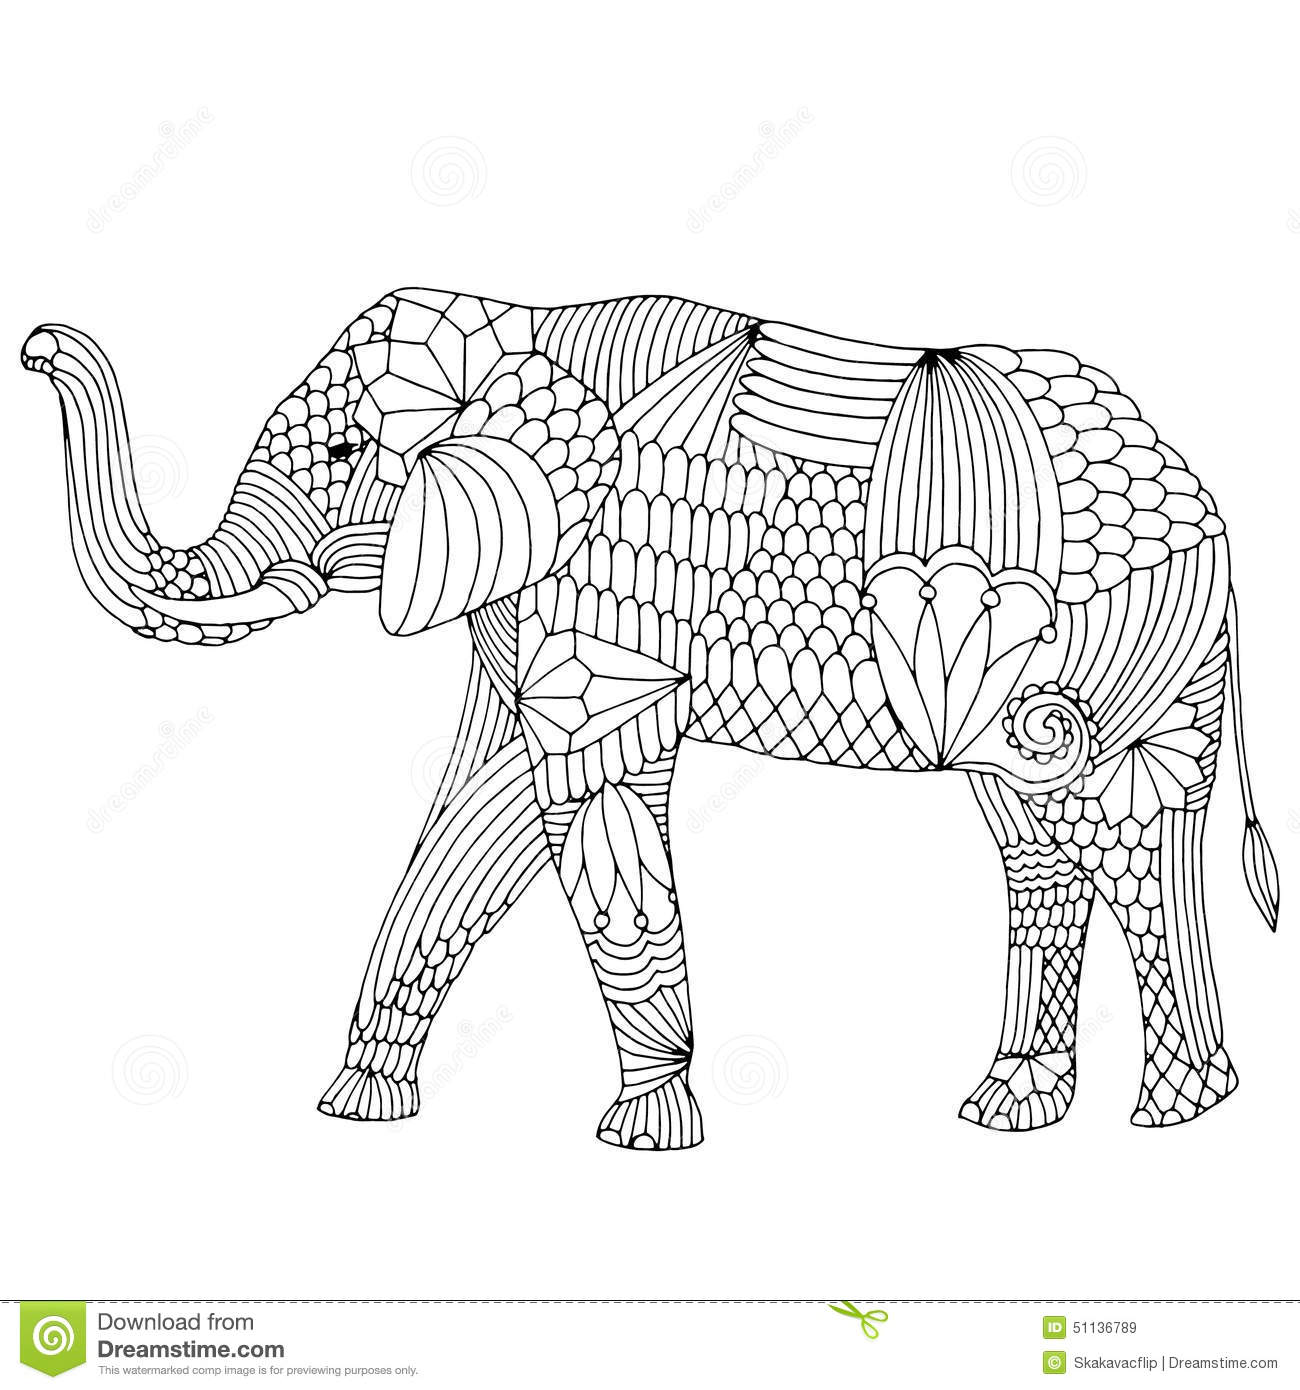 Embroidery Pattern Elephant Stock Illustrations – 66 Embroidery ...